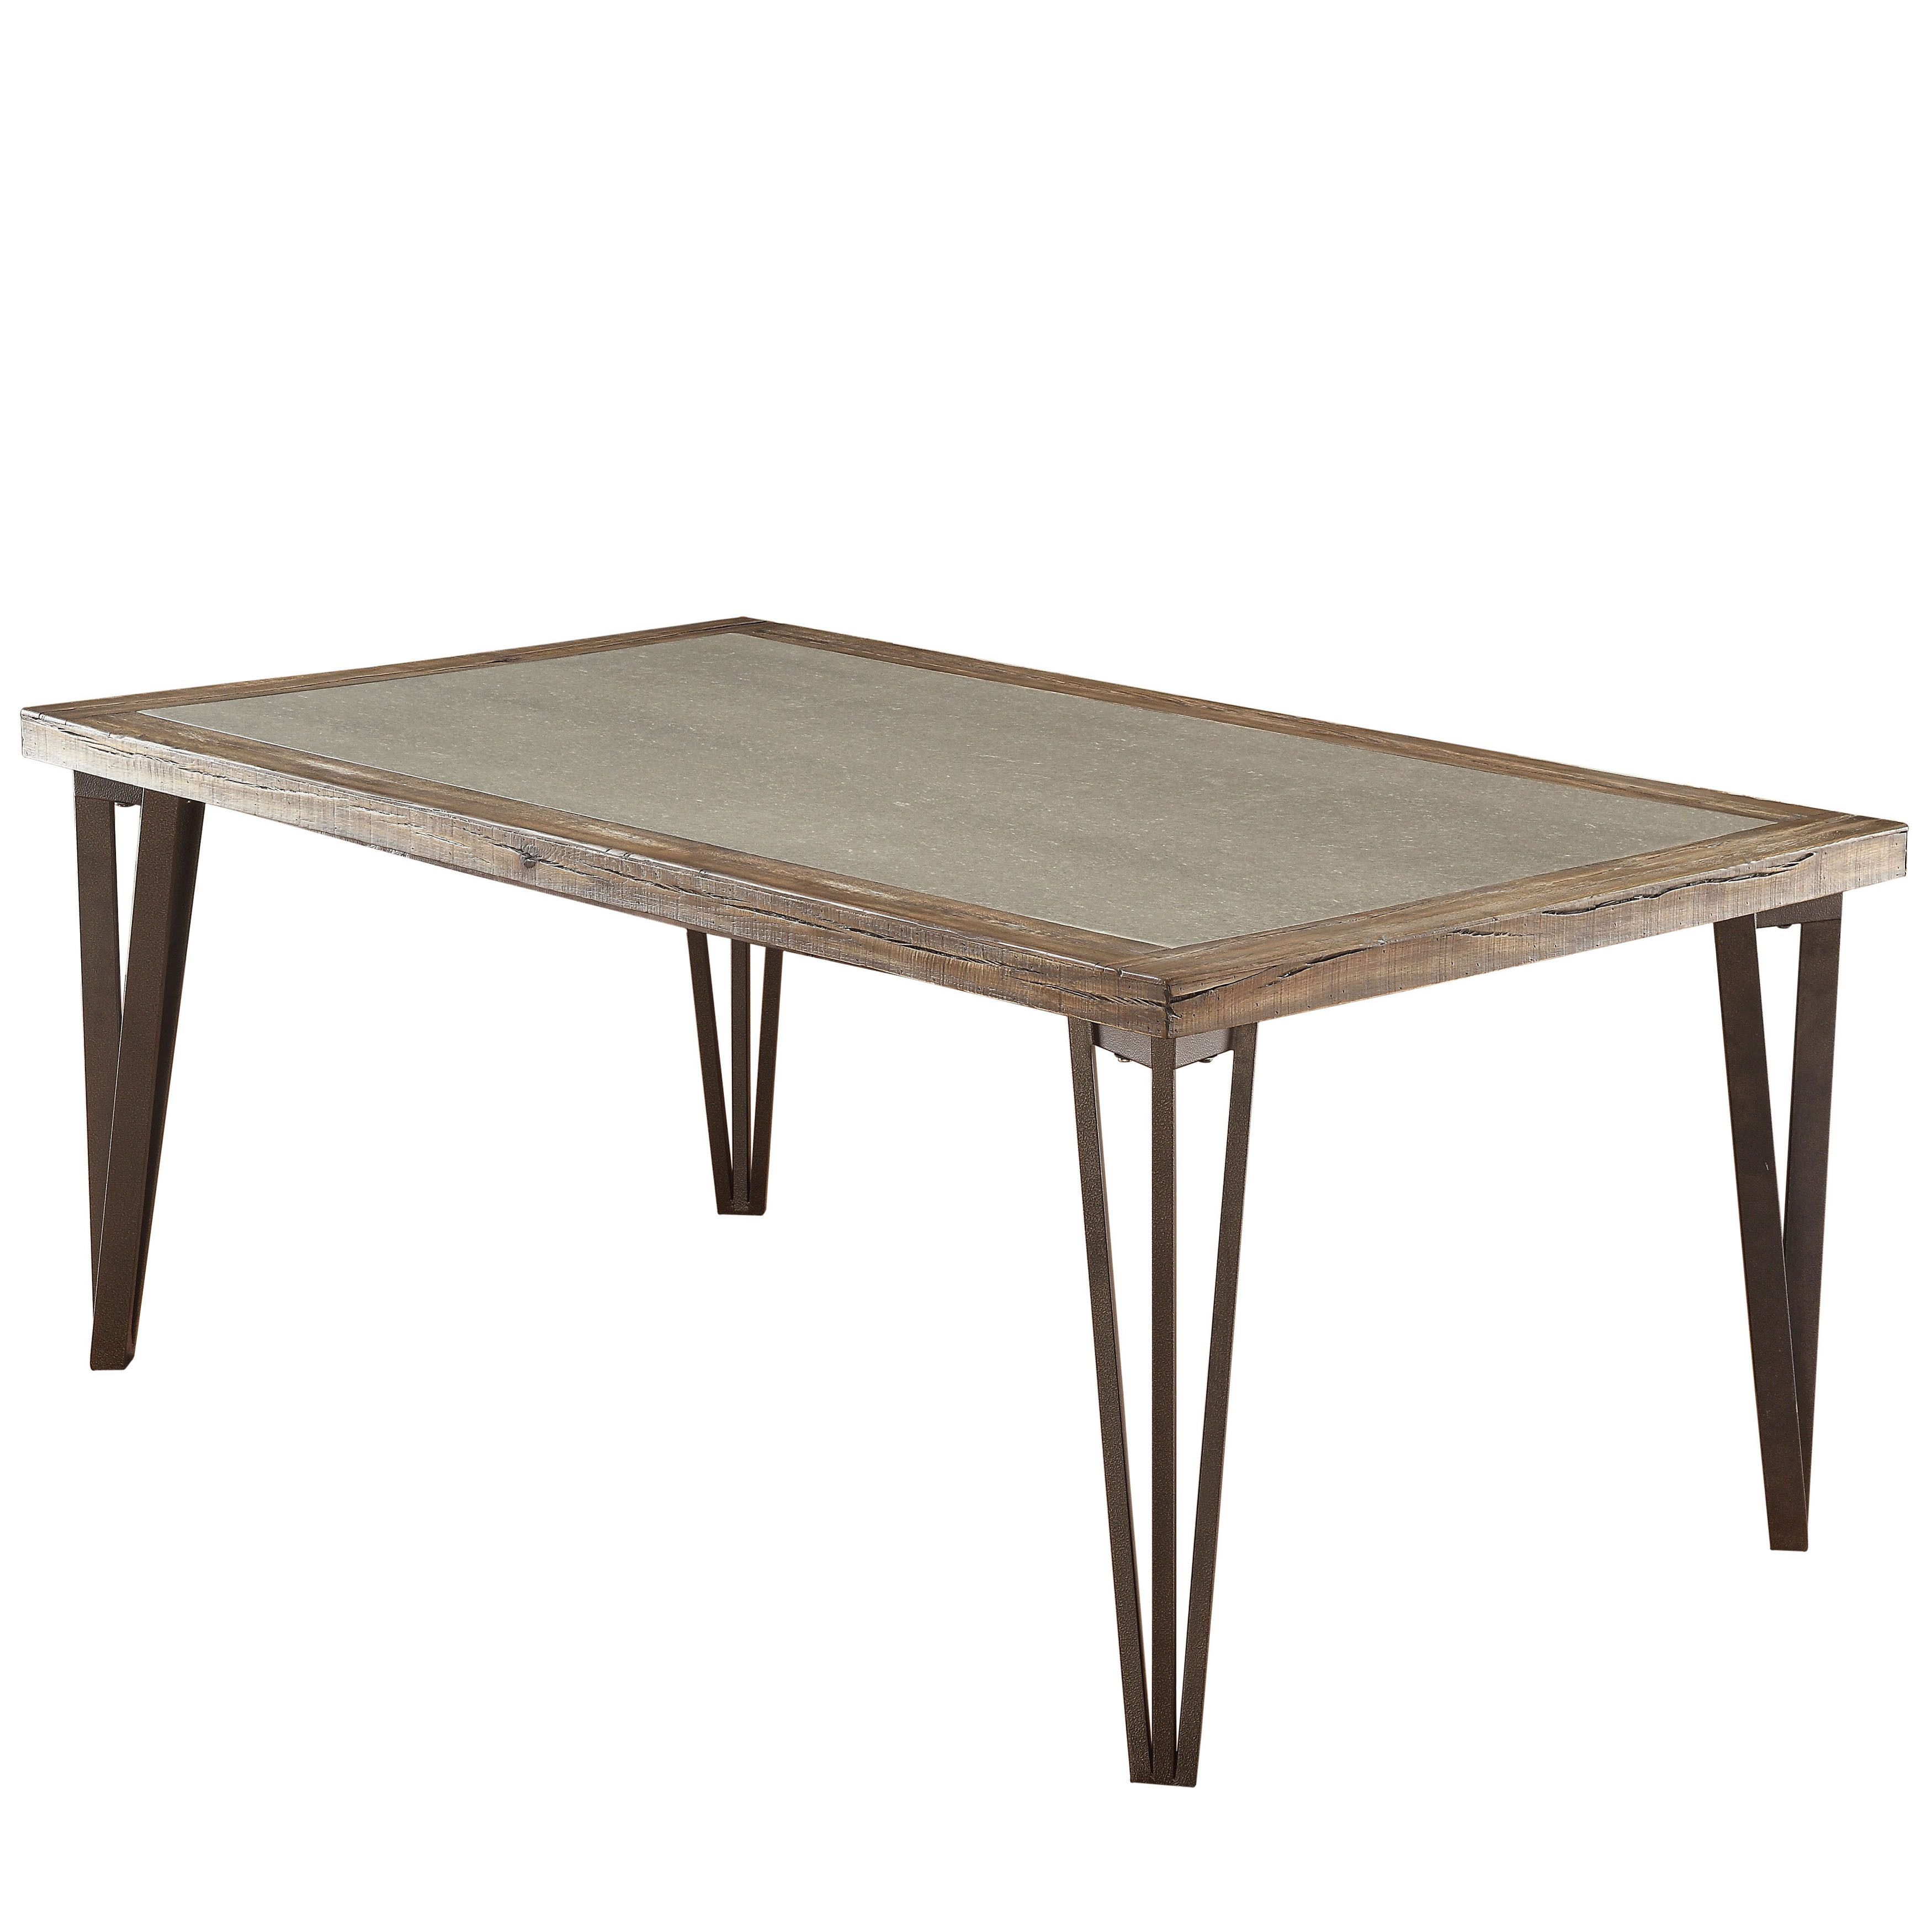 Furniture Of America Hailey Rustic Weathered Elm Stone Top Dining